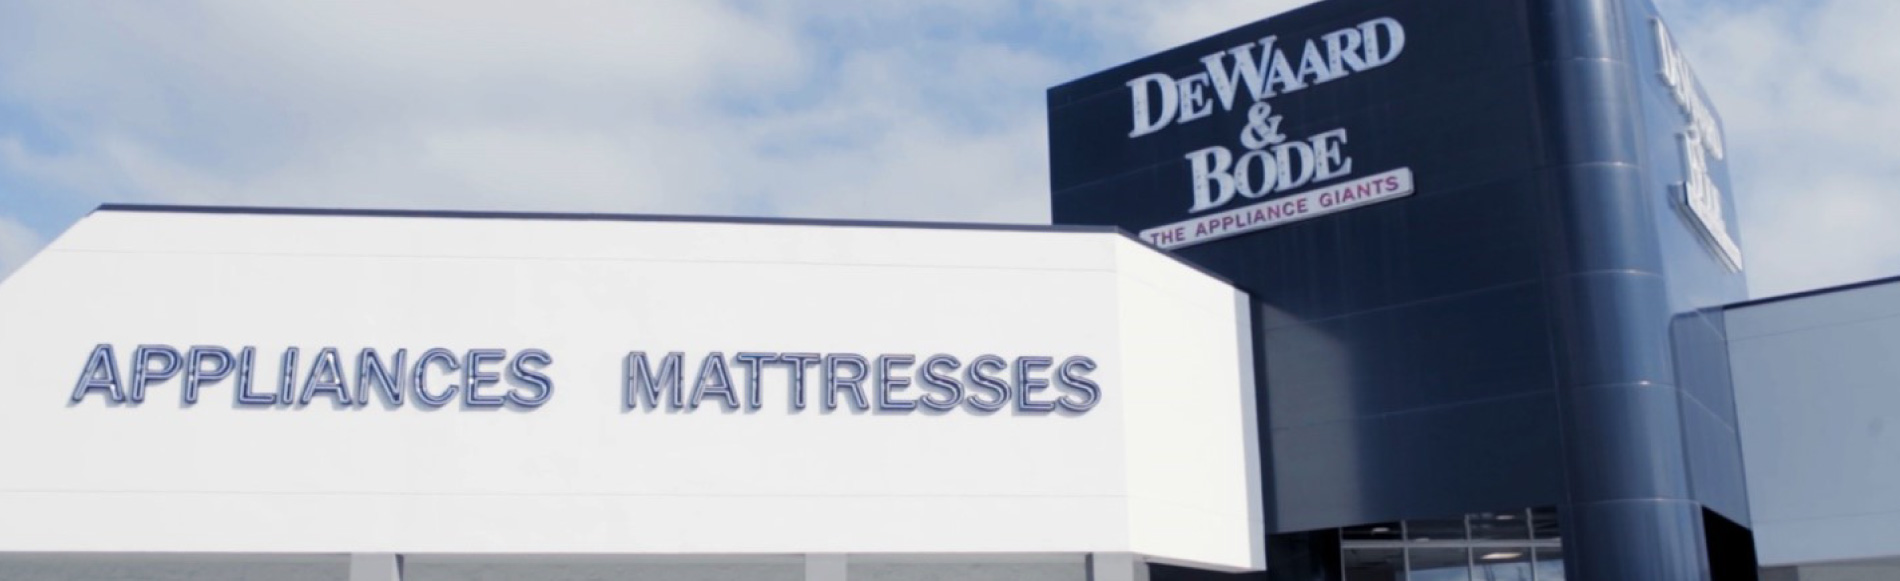 Appliances Mattresses